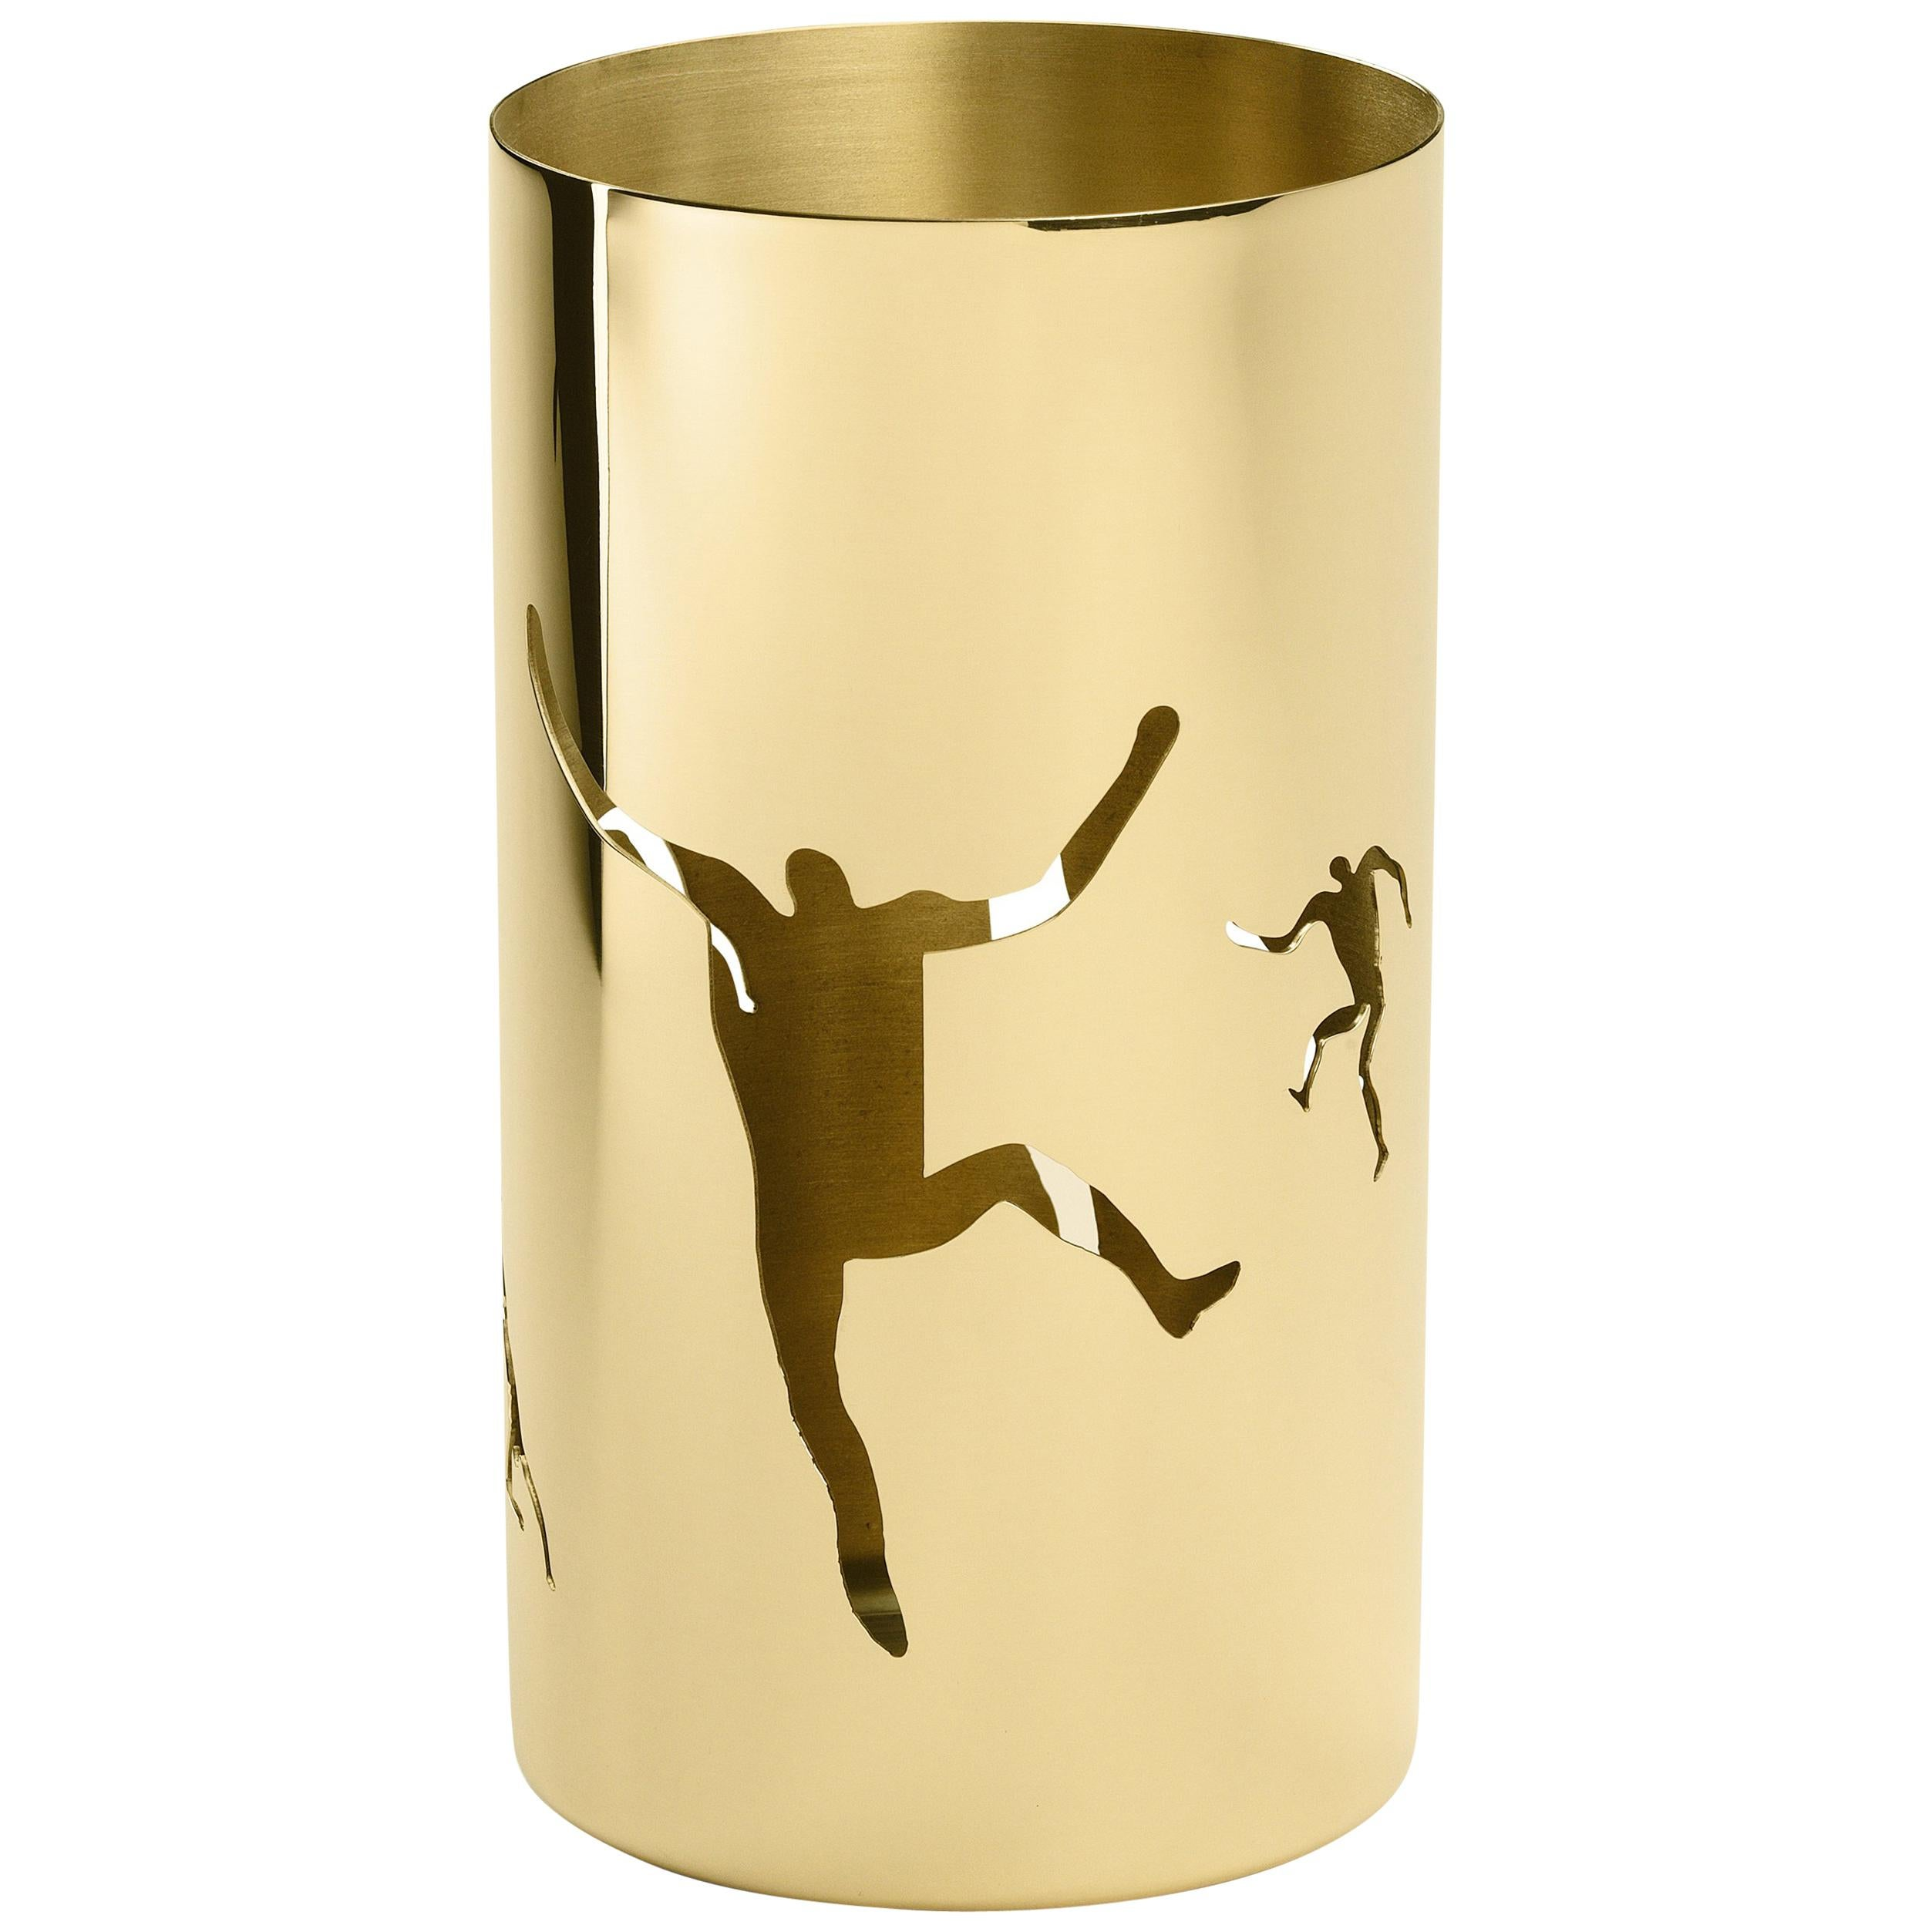 Ghidini 1961 Cestino 3 Cylinder Bowl in Polished Brass by Andrea Branzi